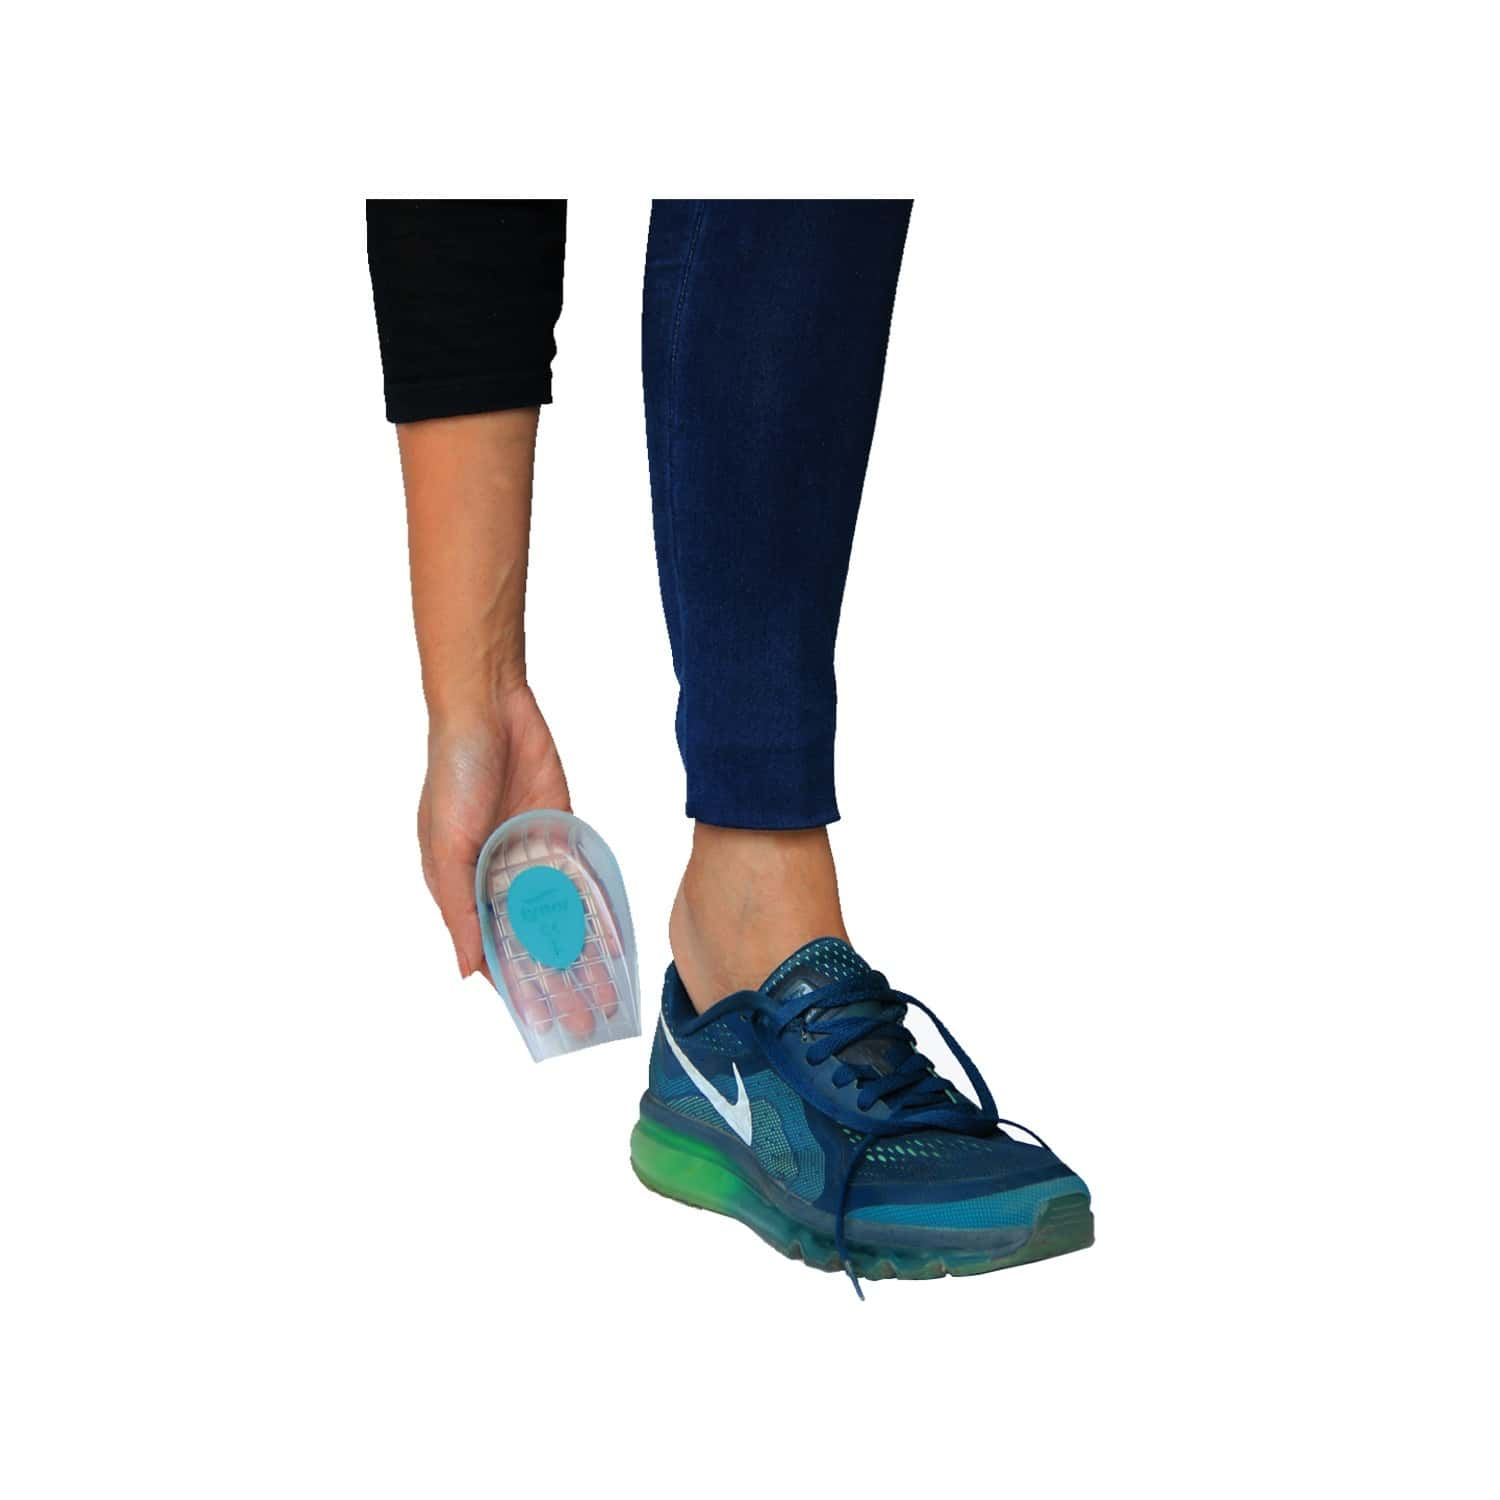 Tynor Heel Cushion Silicone ( Comfortable,odorless,pain Relief) - Small